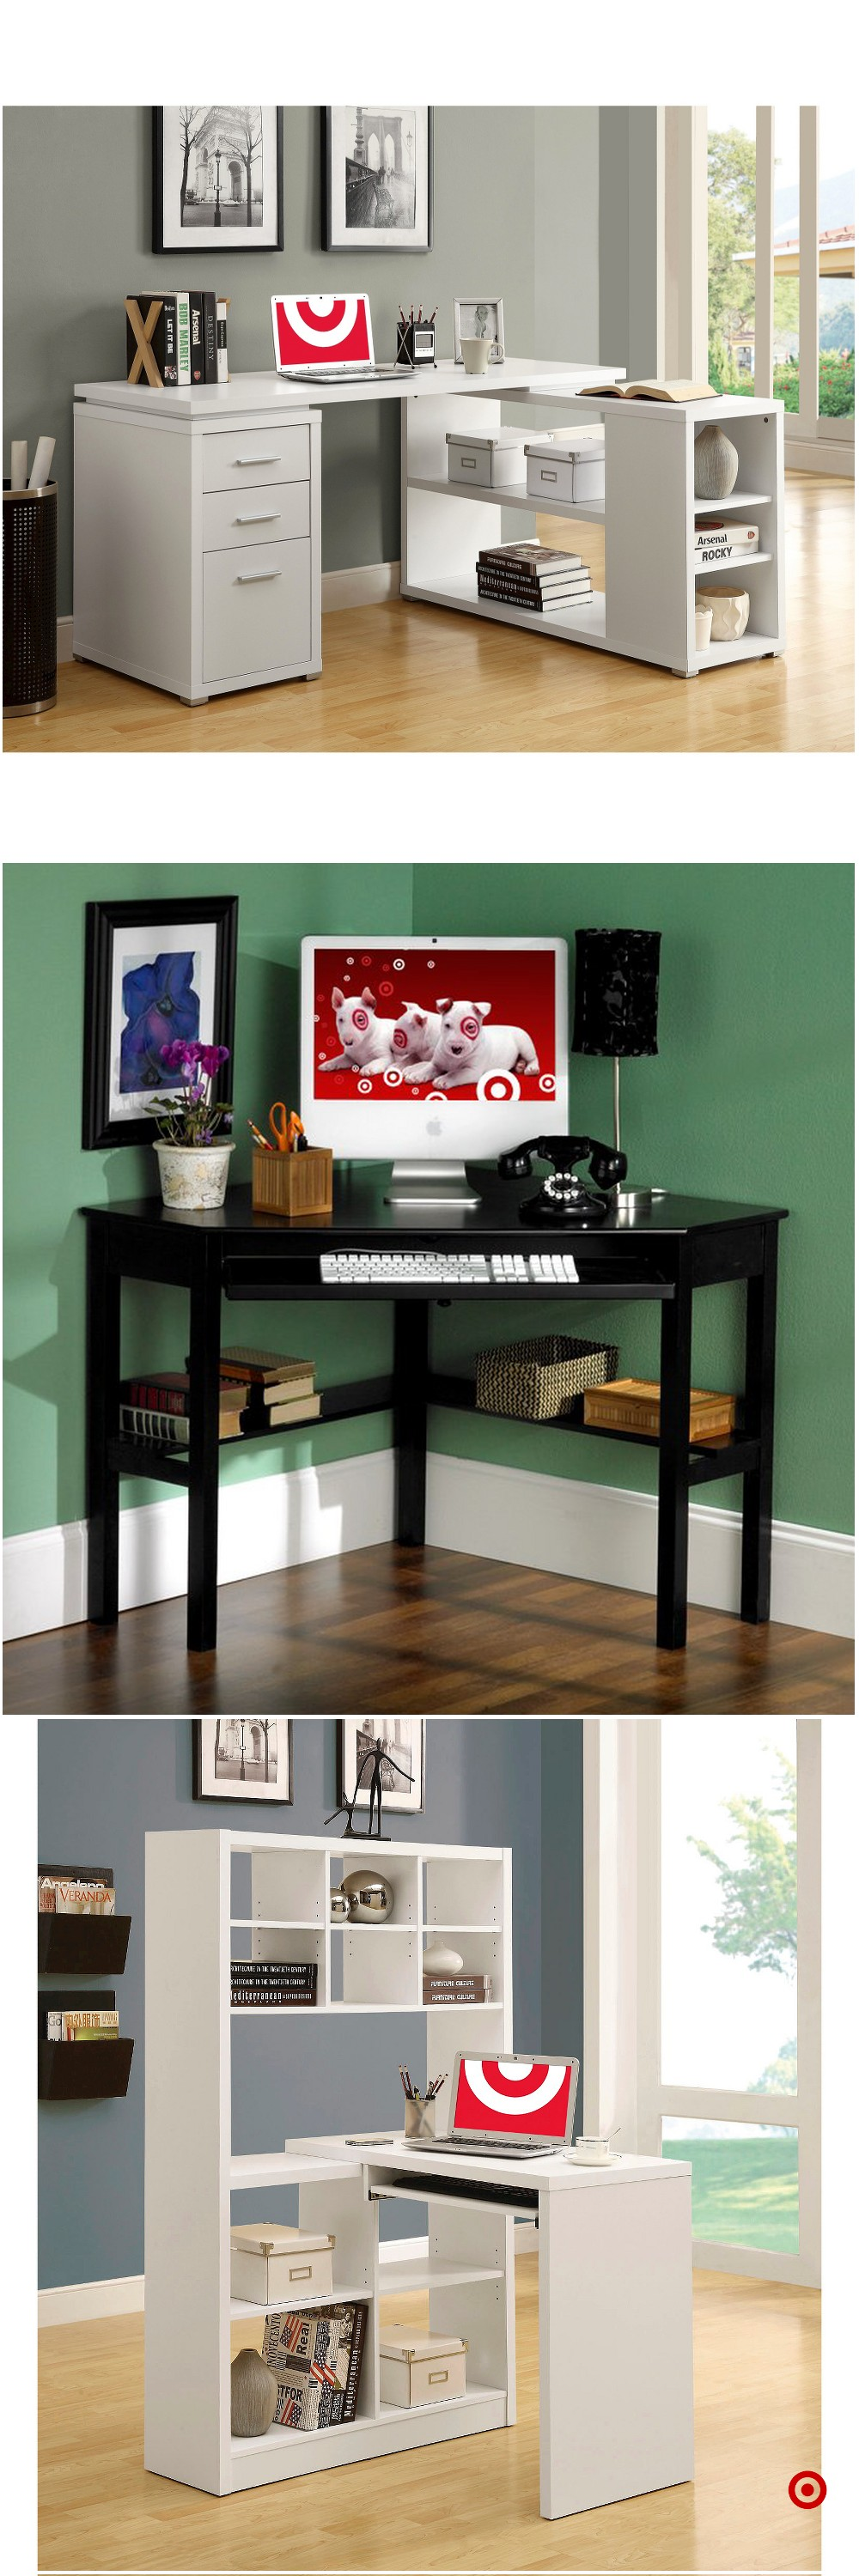 Shop Target For Corner Desk You Will Love At Great Low Prices Free Shipping On All Orders Or Free Same Day Pick Up In Stor Home Office Design Home Corner Desk